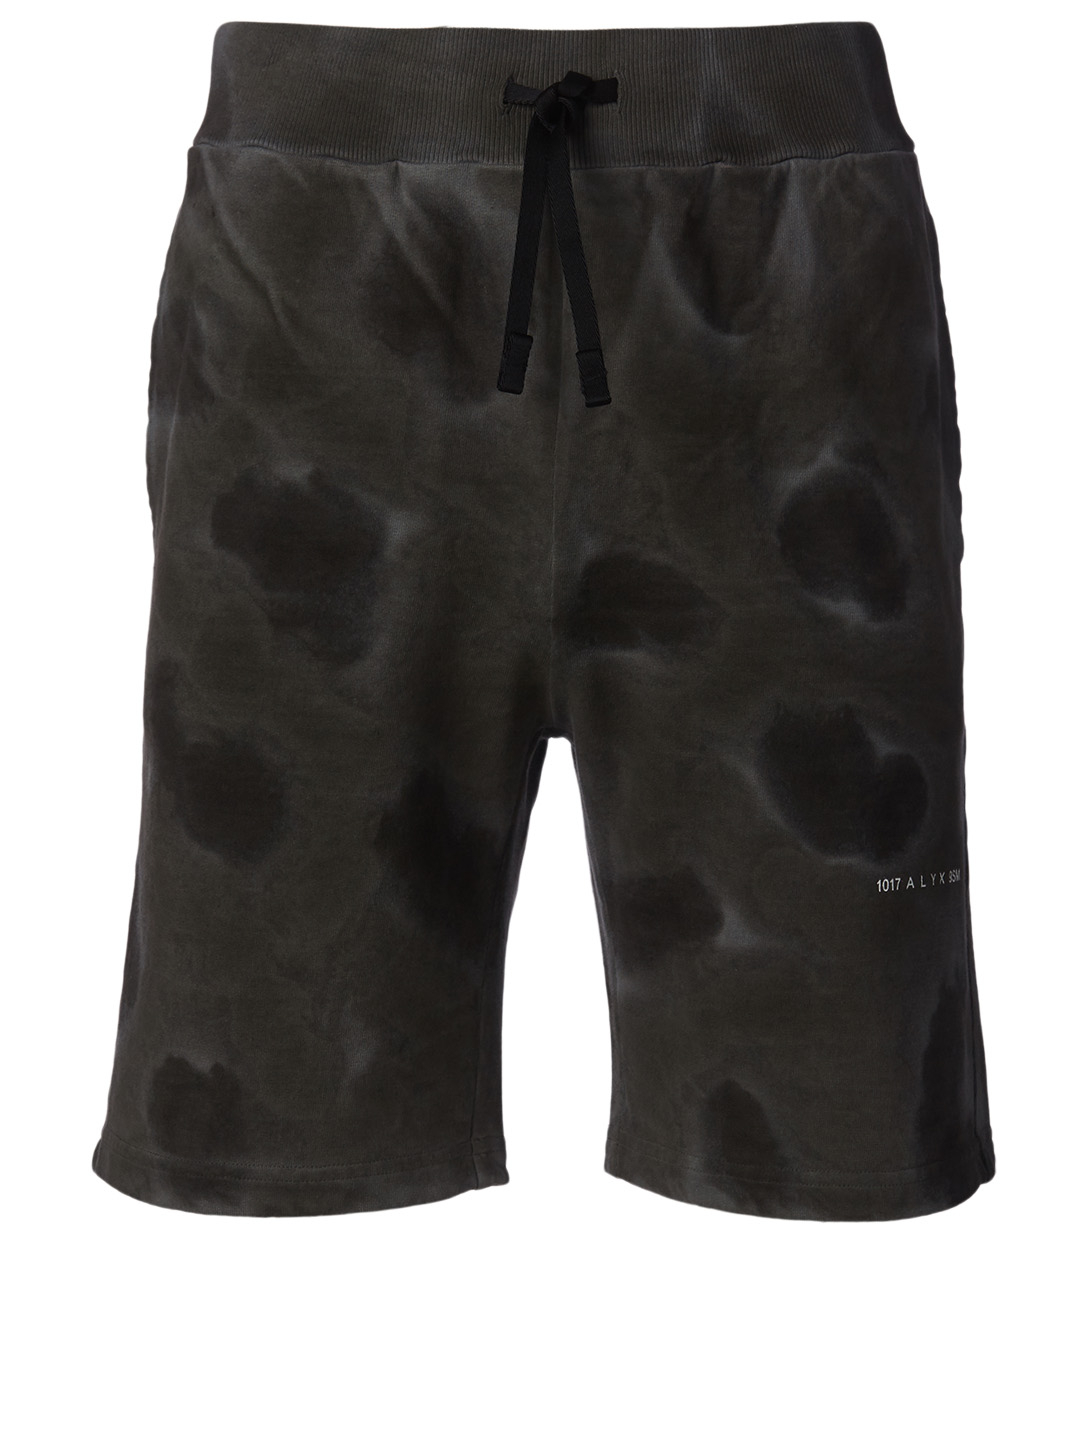 1017 ALYX 9SM Cotton Bermuda Shorts In Camo Print Men's Black